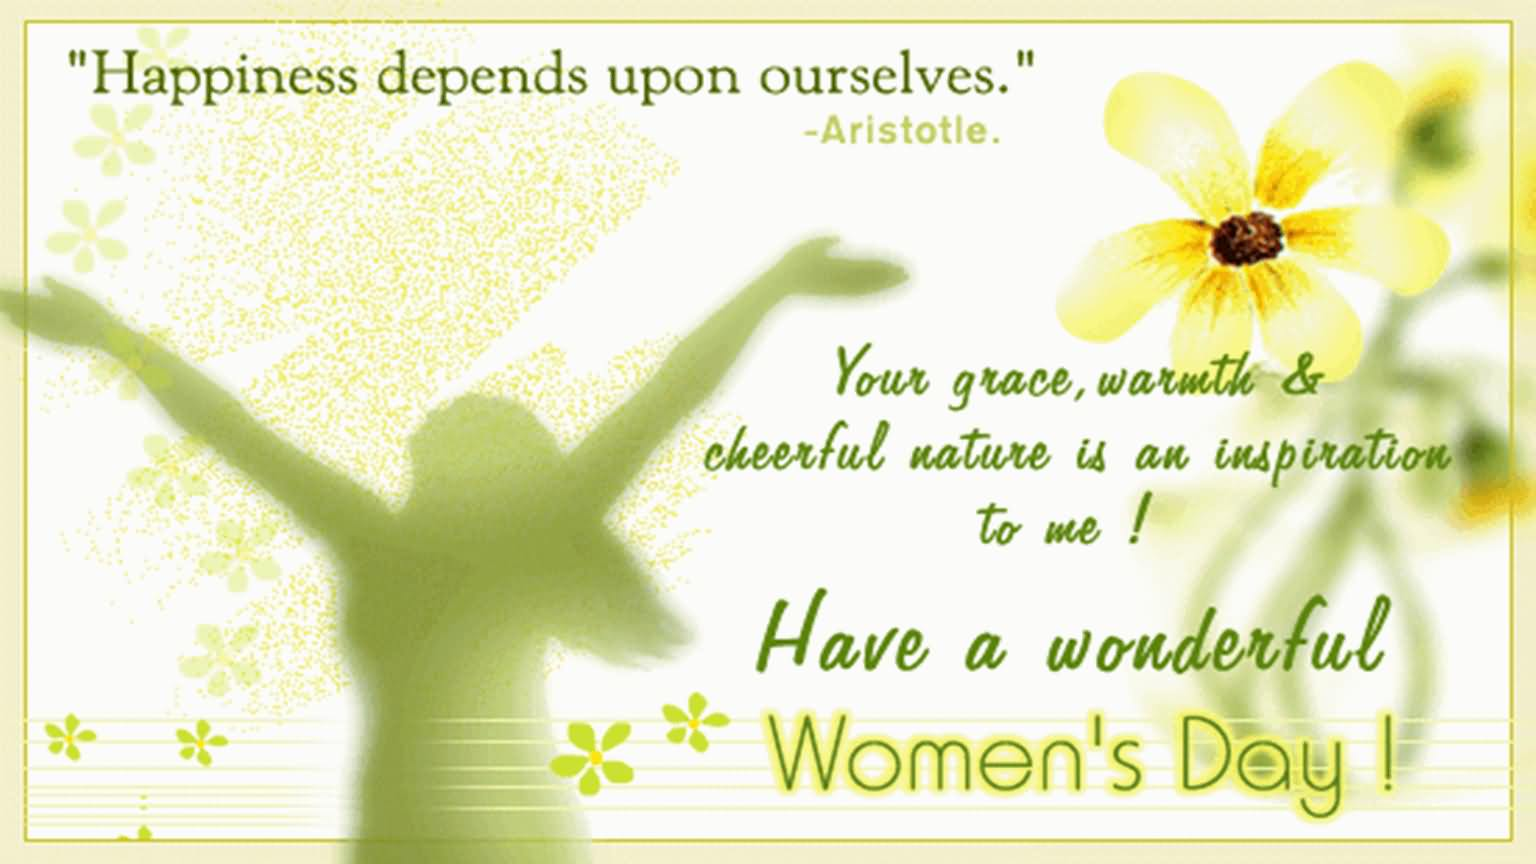 Your Grace Warmth And Cheerful Nature Is An Inspiration To me Have A Wonderful Women's Day